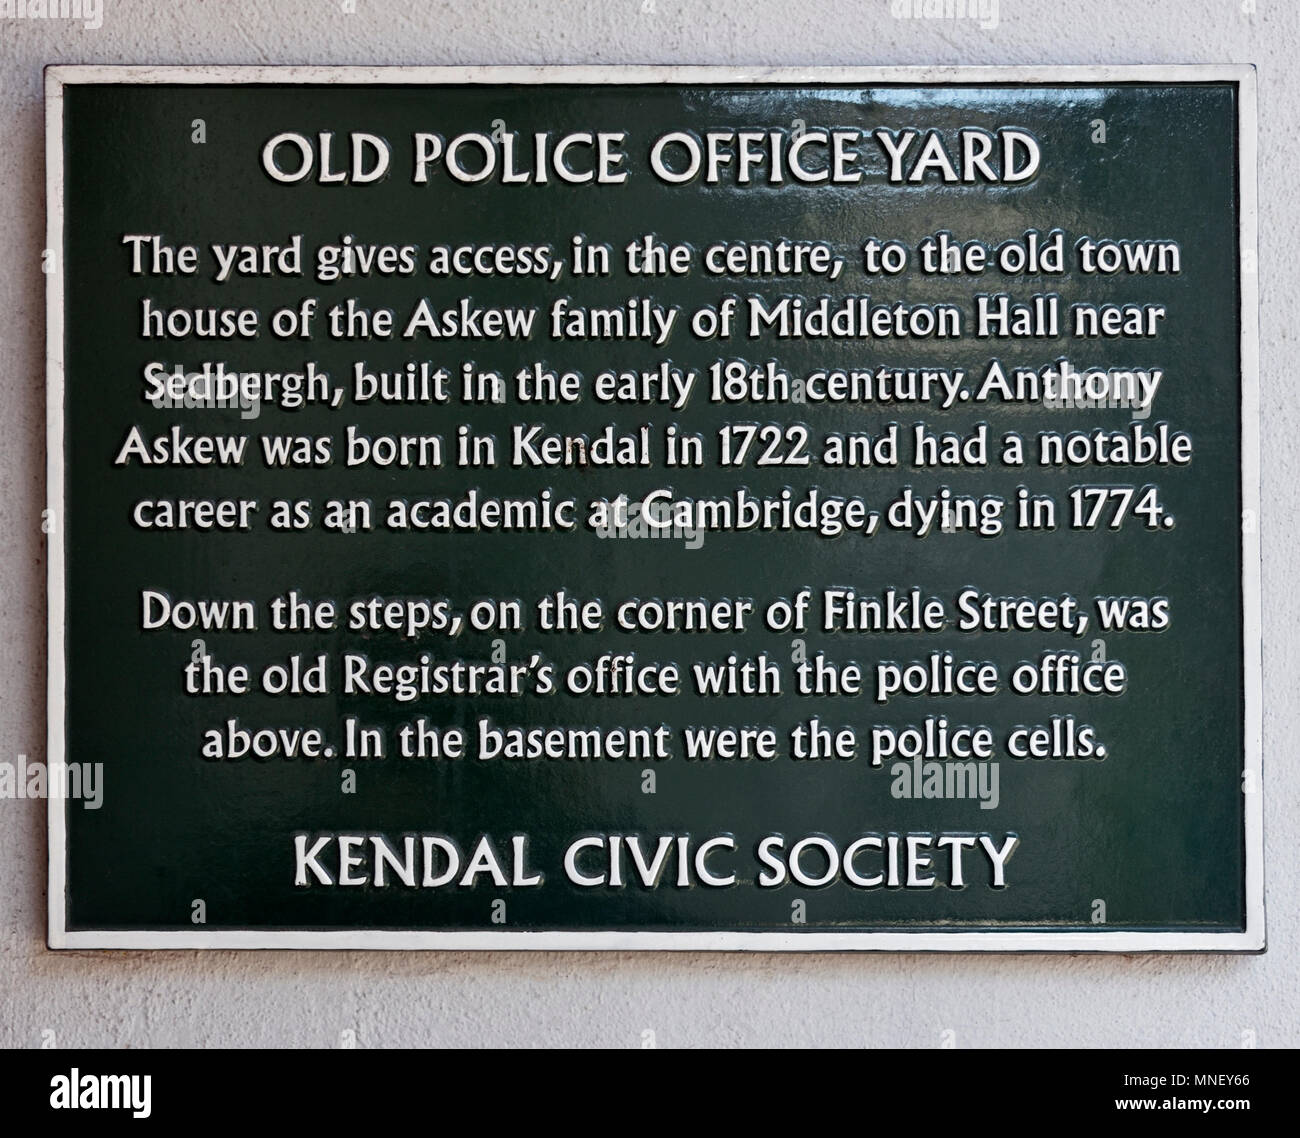 Kendal Civic Society Information Plaque. Old Police Office Yard, Finkle Street, Kendal, Cumbria, England, United Kingdom, Europe. - Stock Image